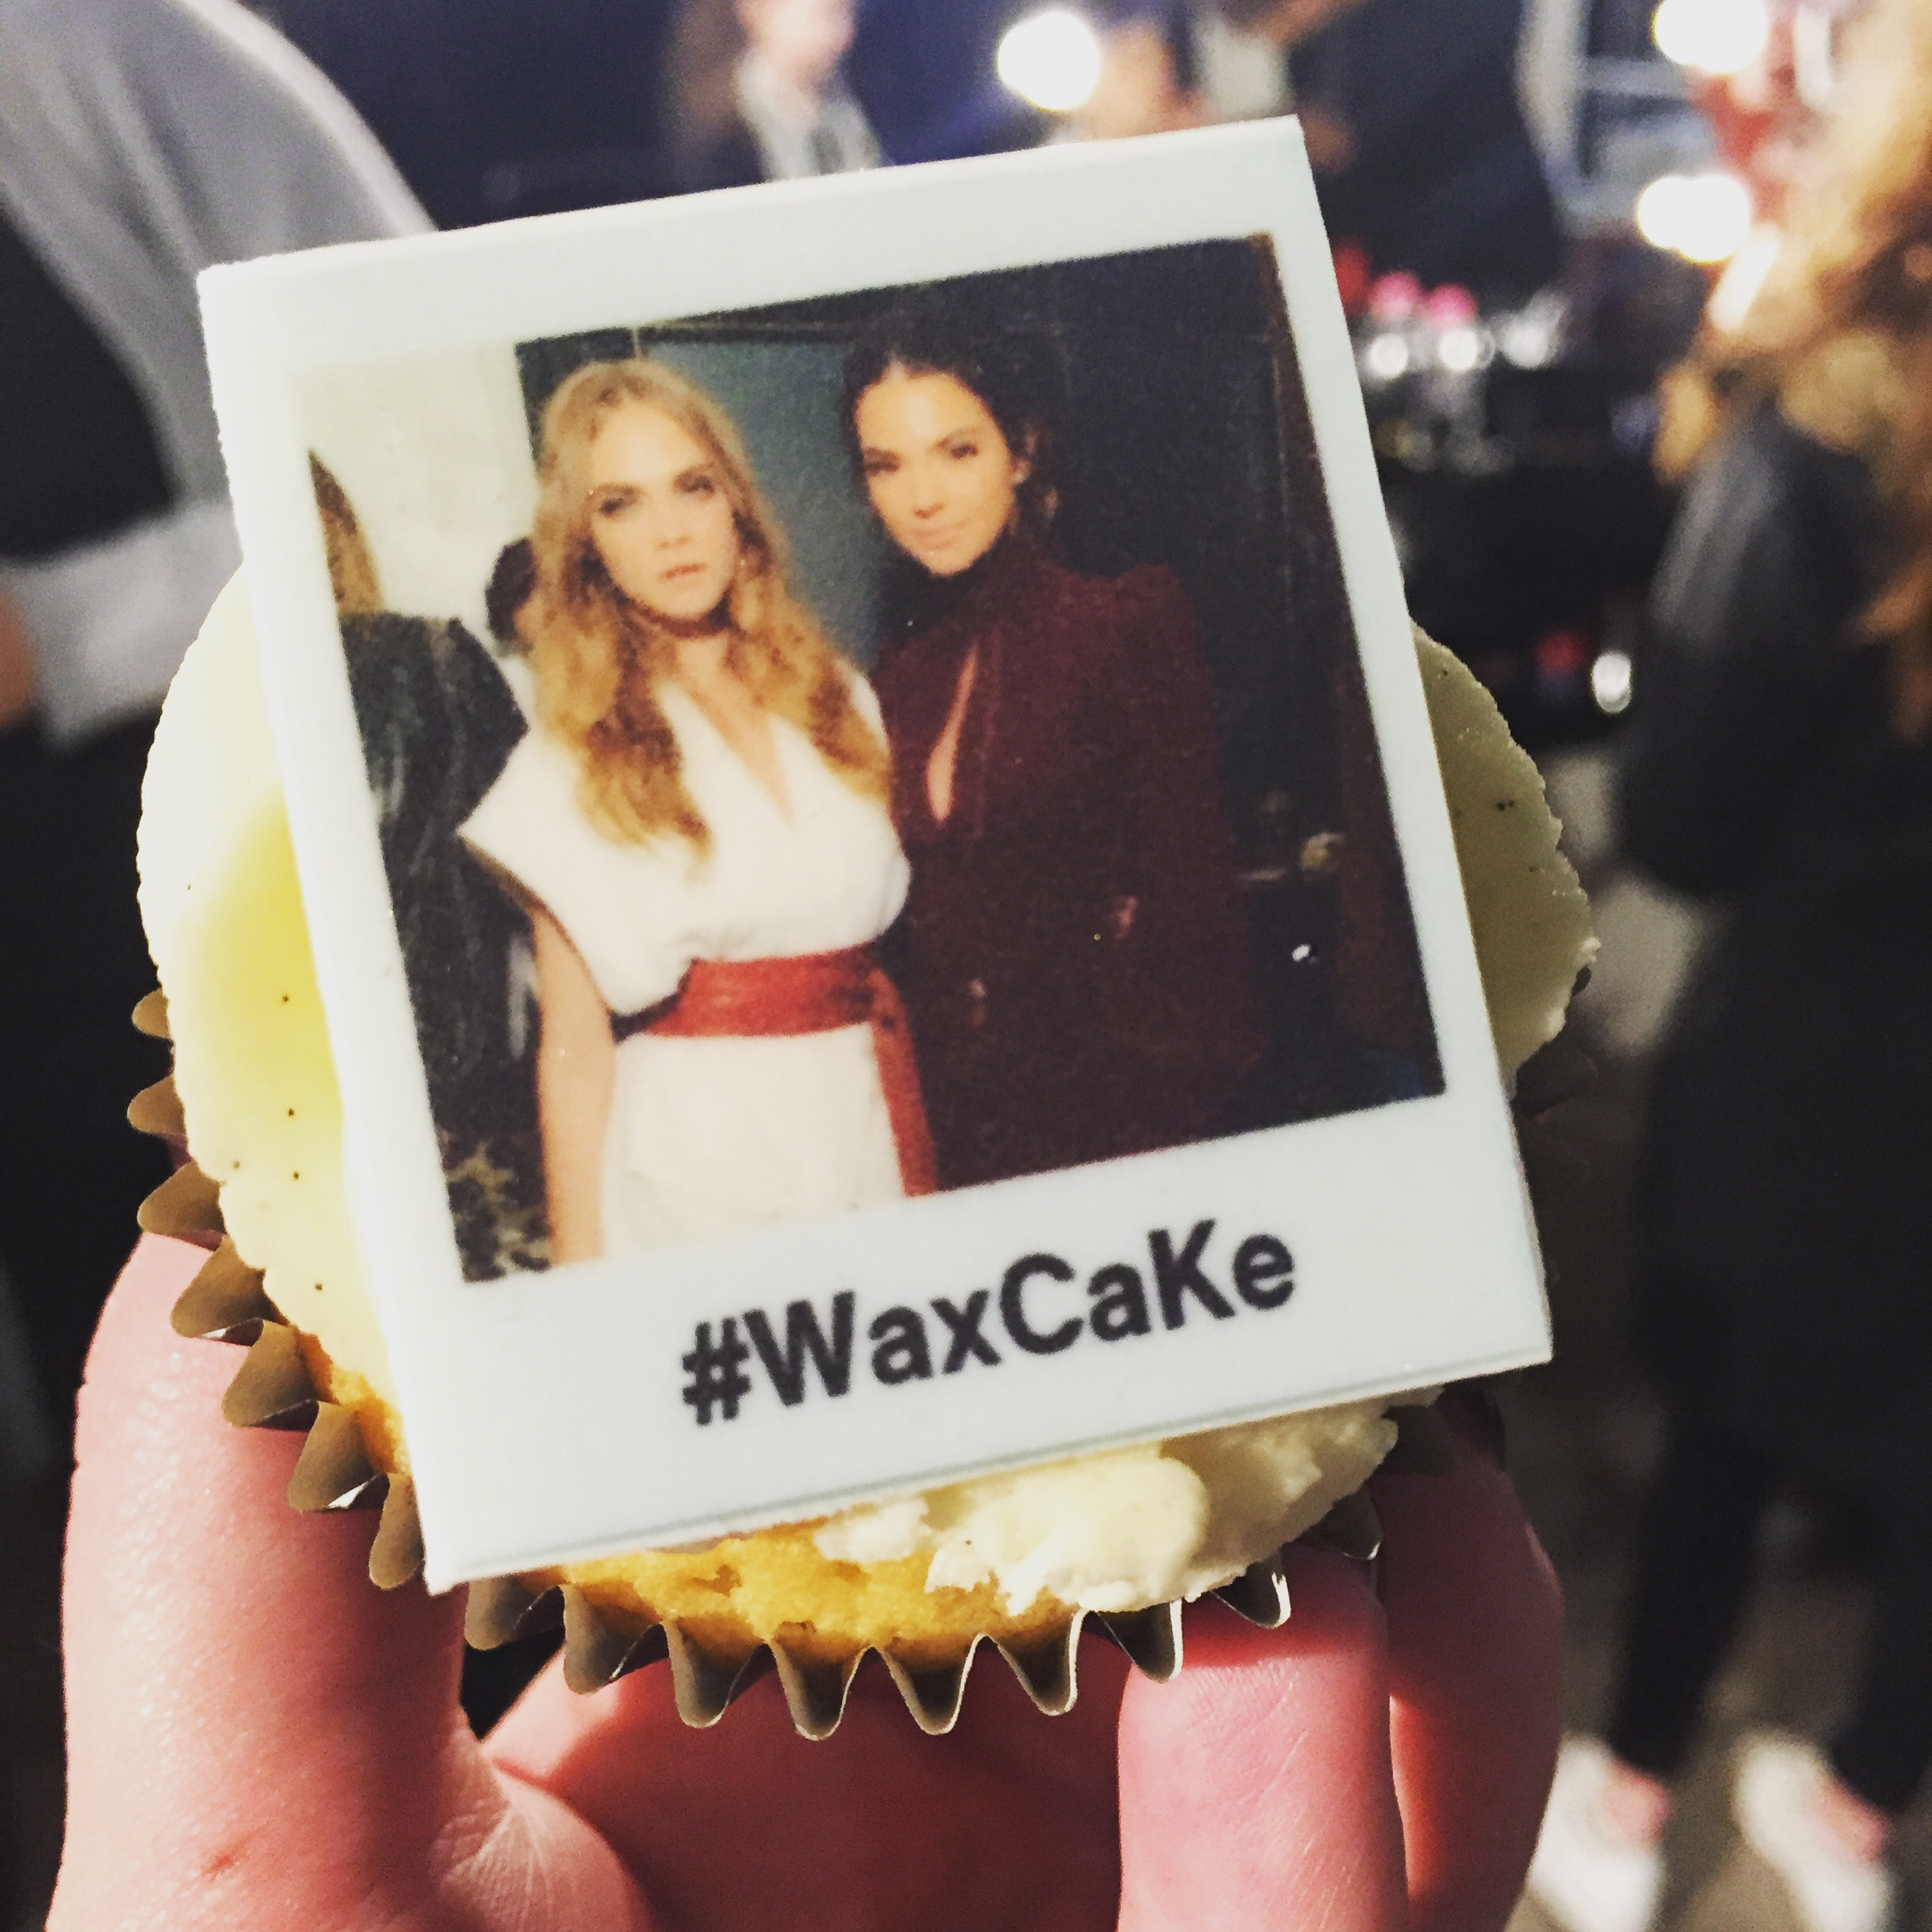 Madame Tussauds Wax #CaKe Fashion Week